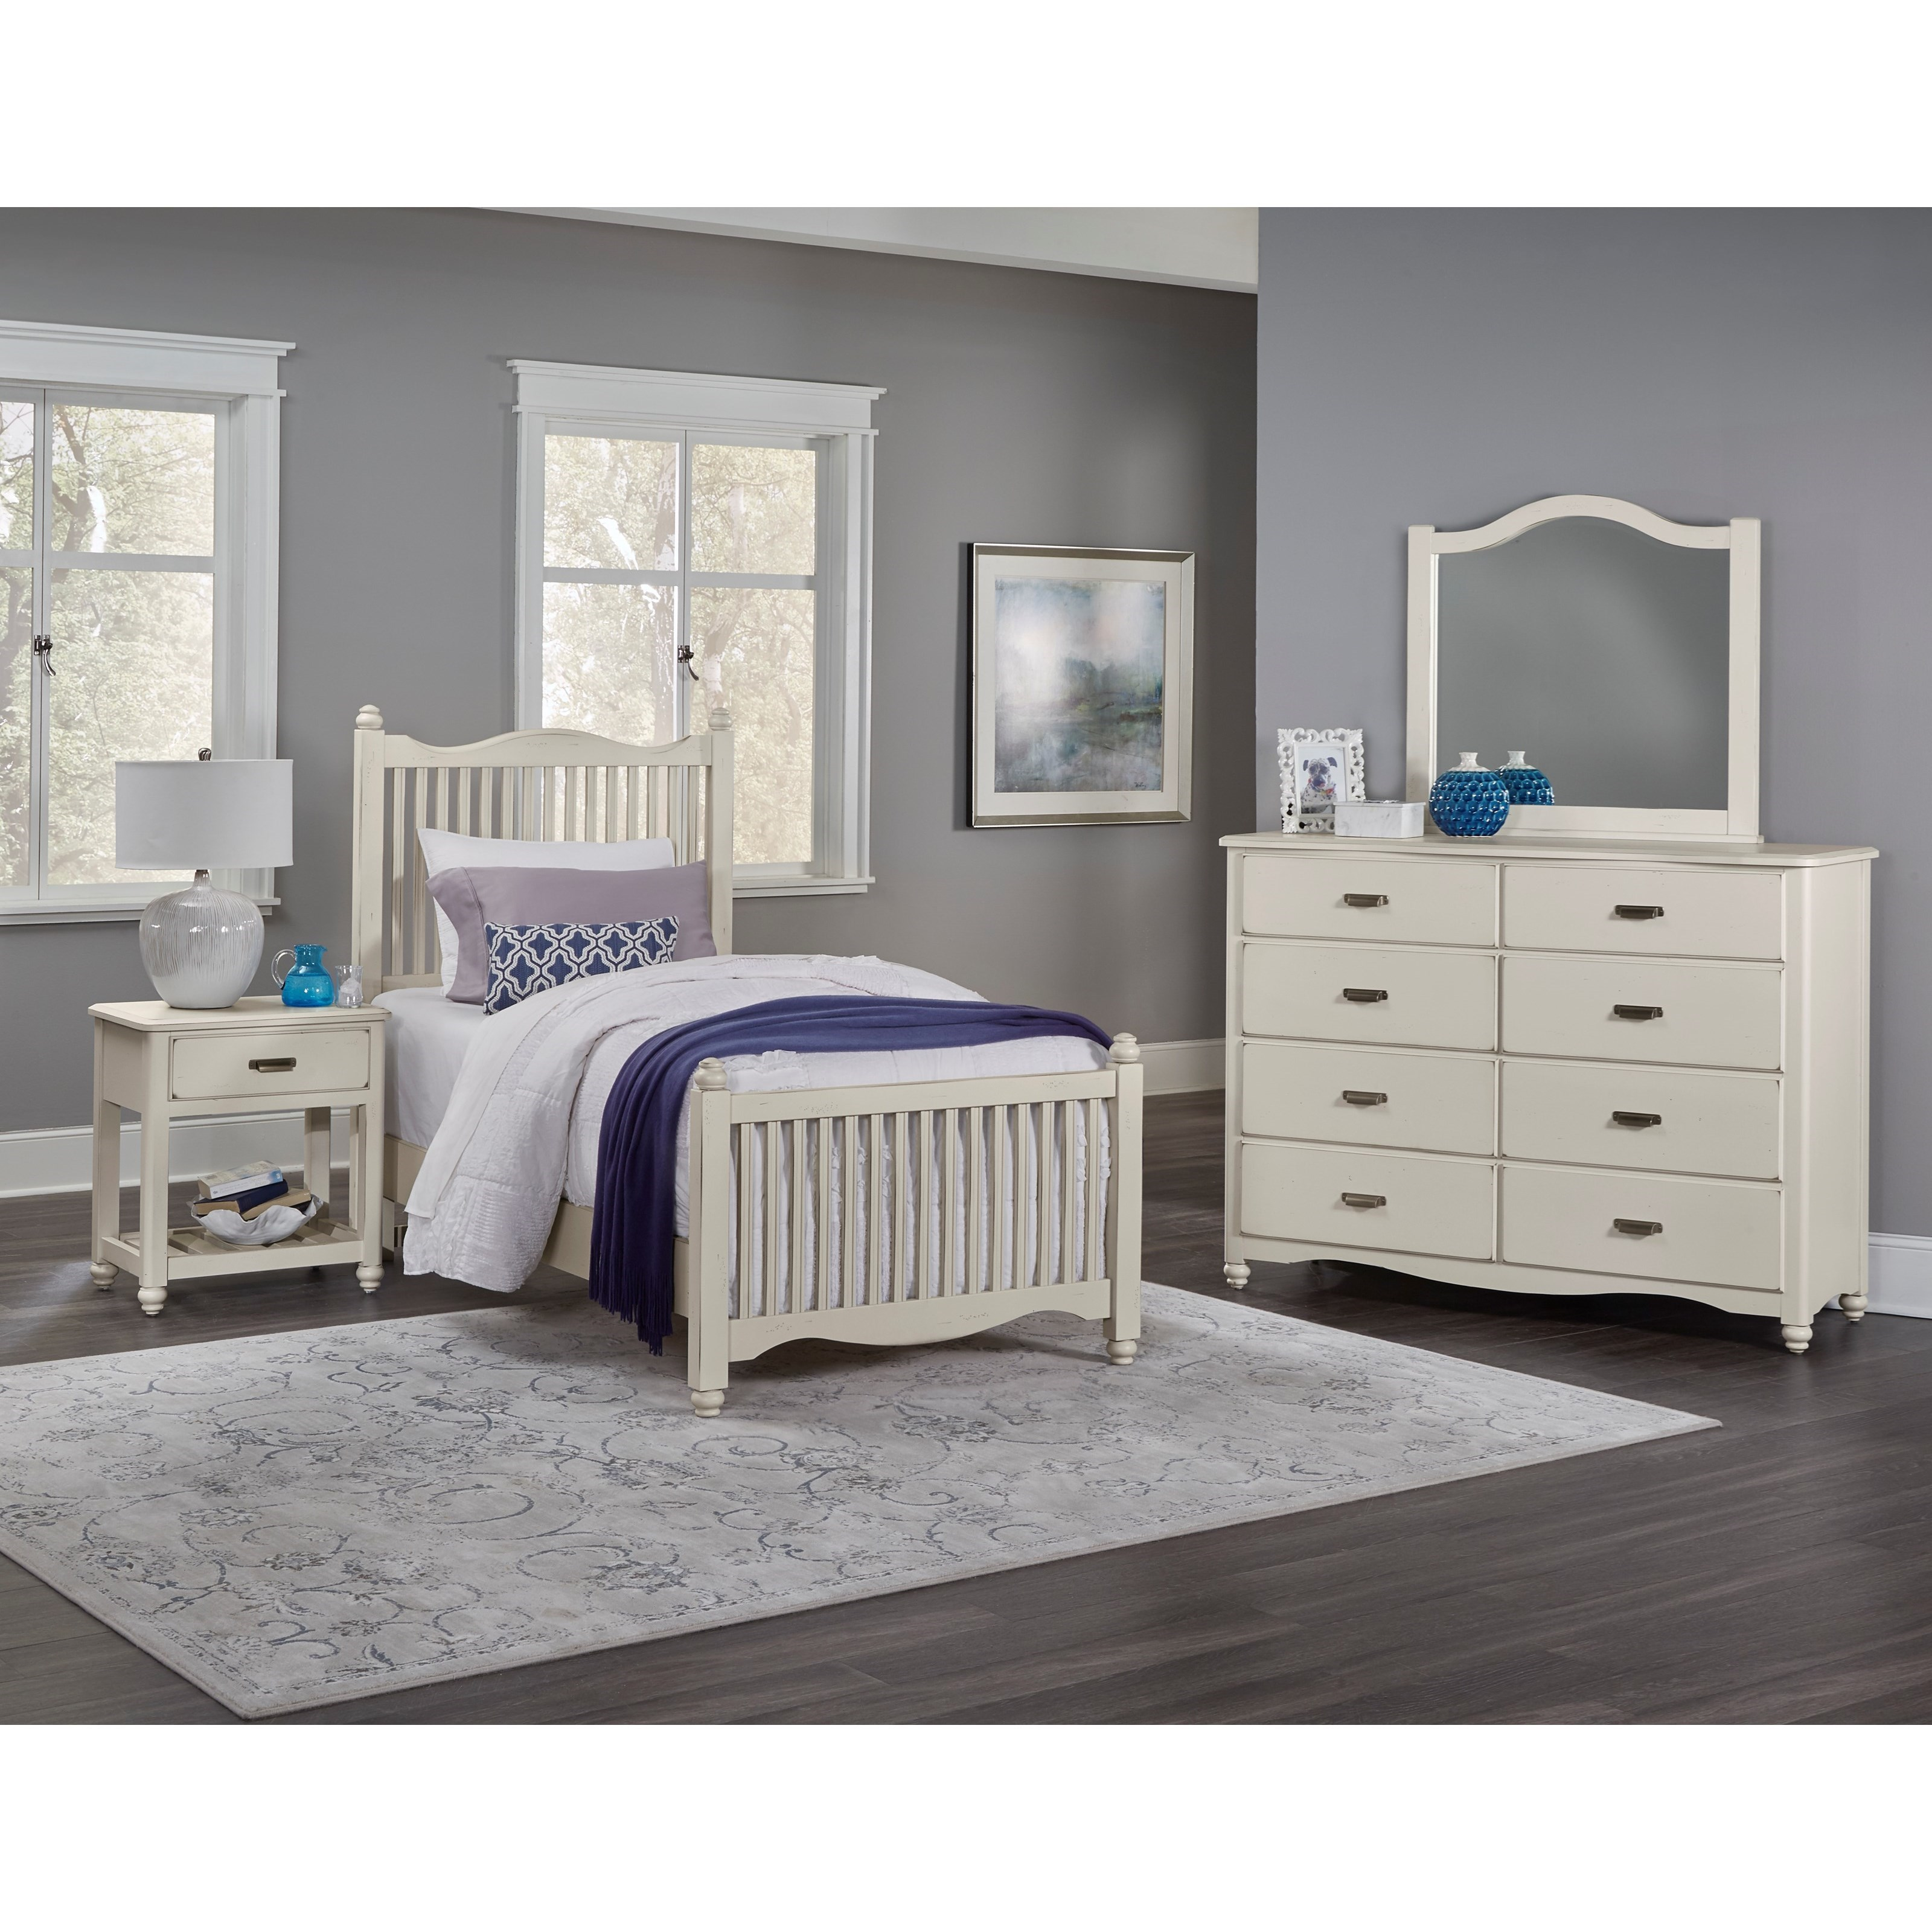 Vaughan Bassett American Maple Twin Bedroom Group - Item Number: 404 T Bedroom Group 5